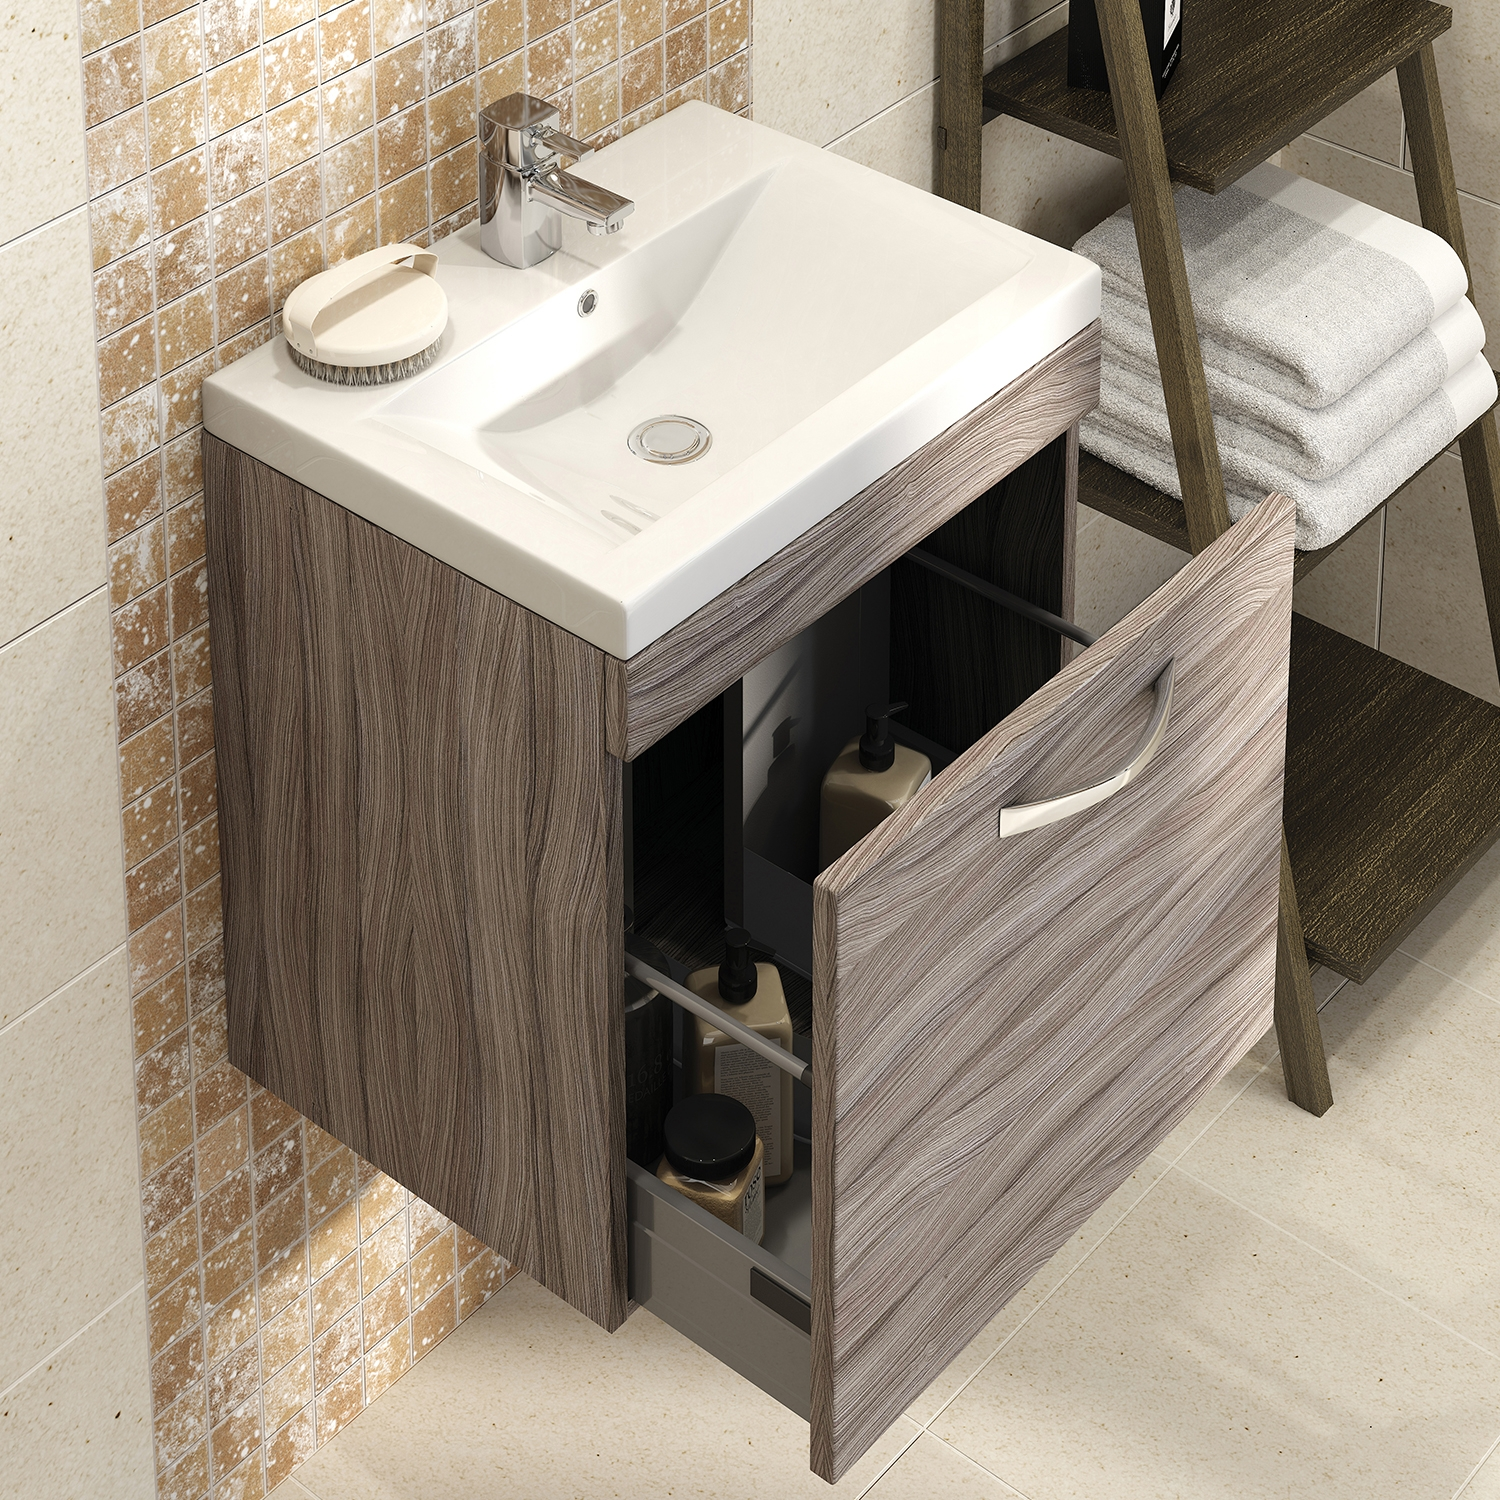 Premier Shipton Wall Hung 1-Drawer Vanity Unit with Basin 500mm Wide - Driftwood 1 Tap Hole